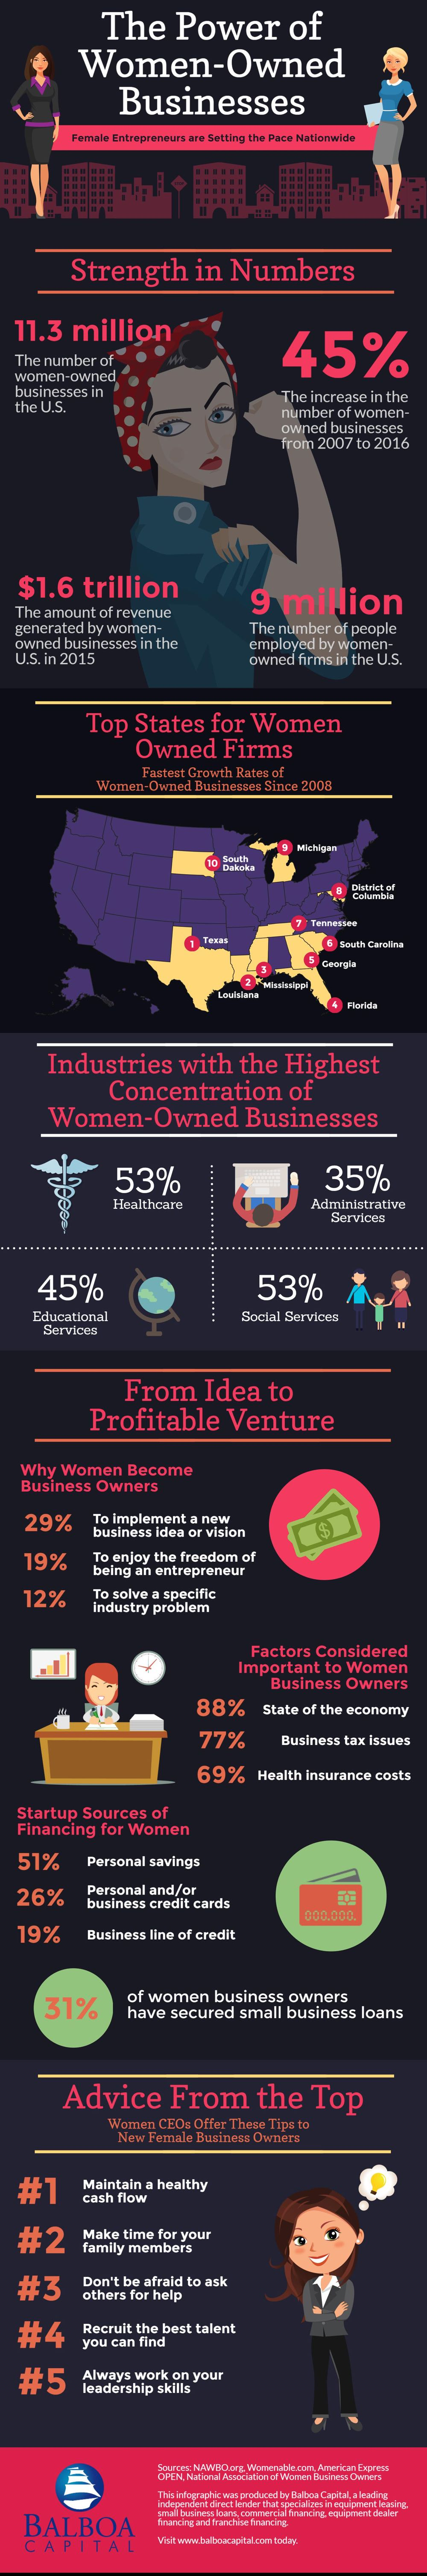 infographic women in business